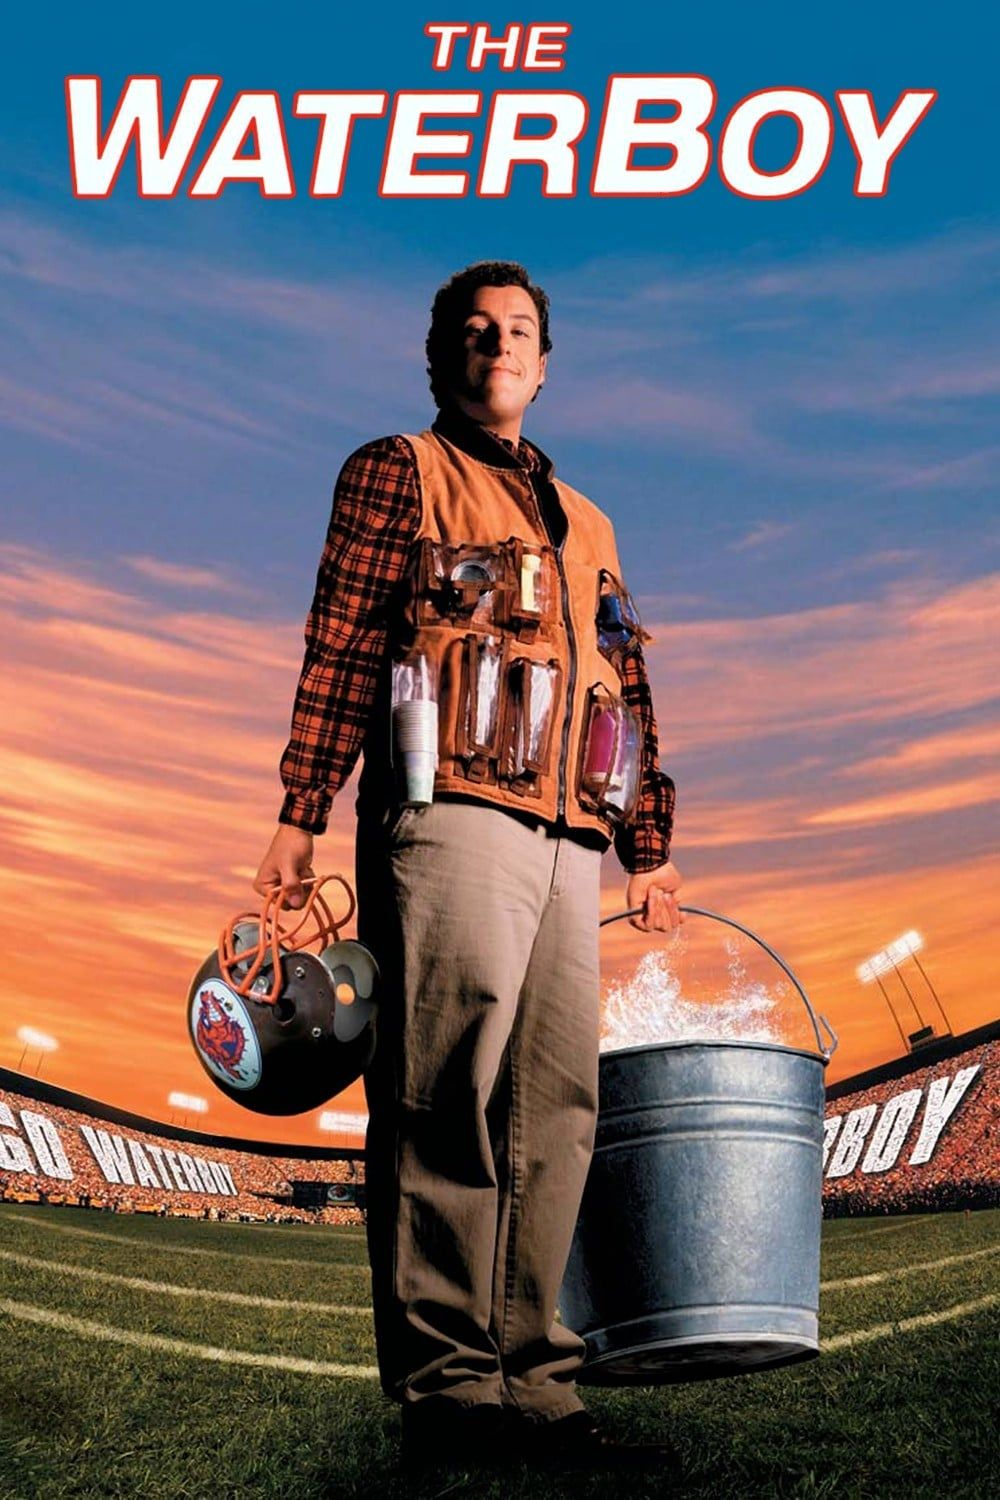 The Waterboy moviesDrama Bobby Boucher is a